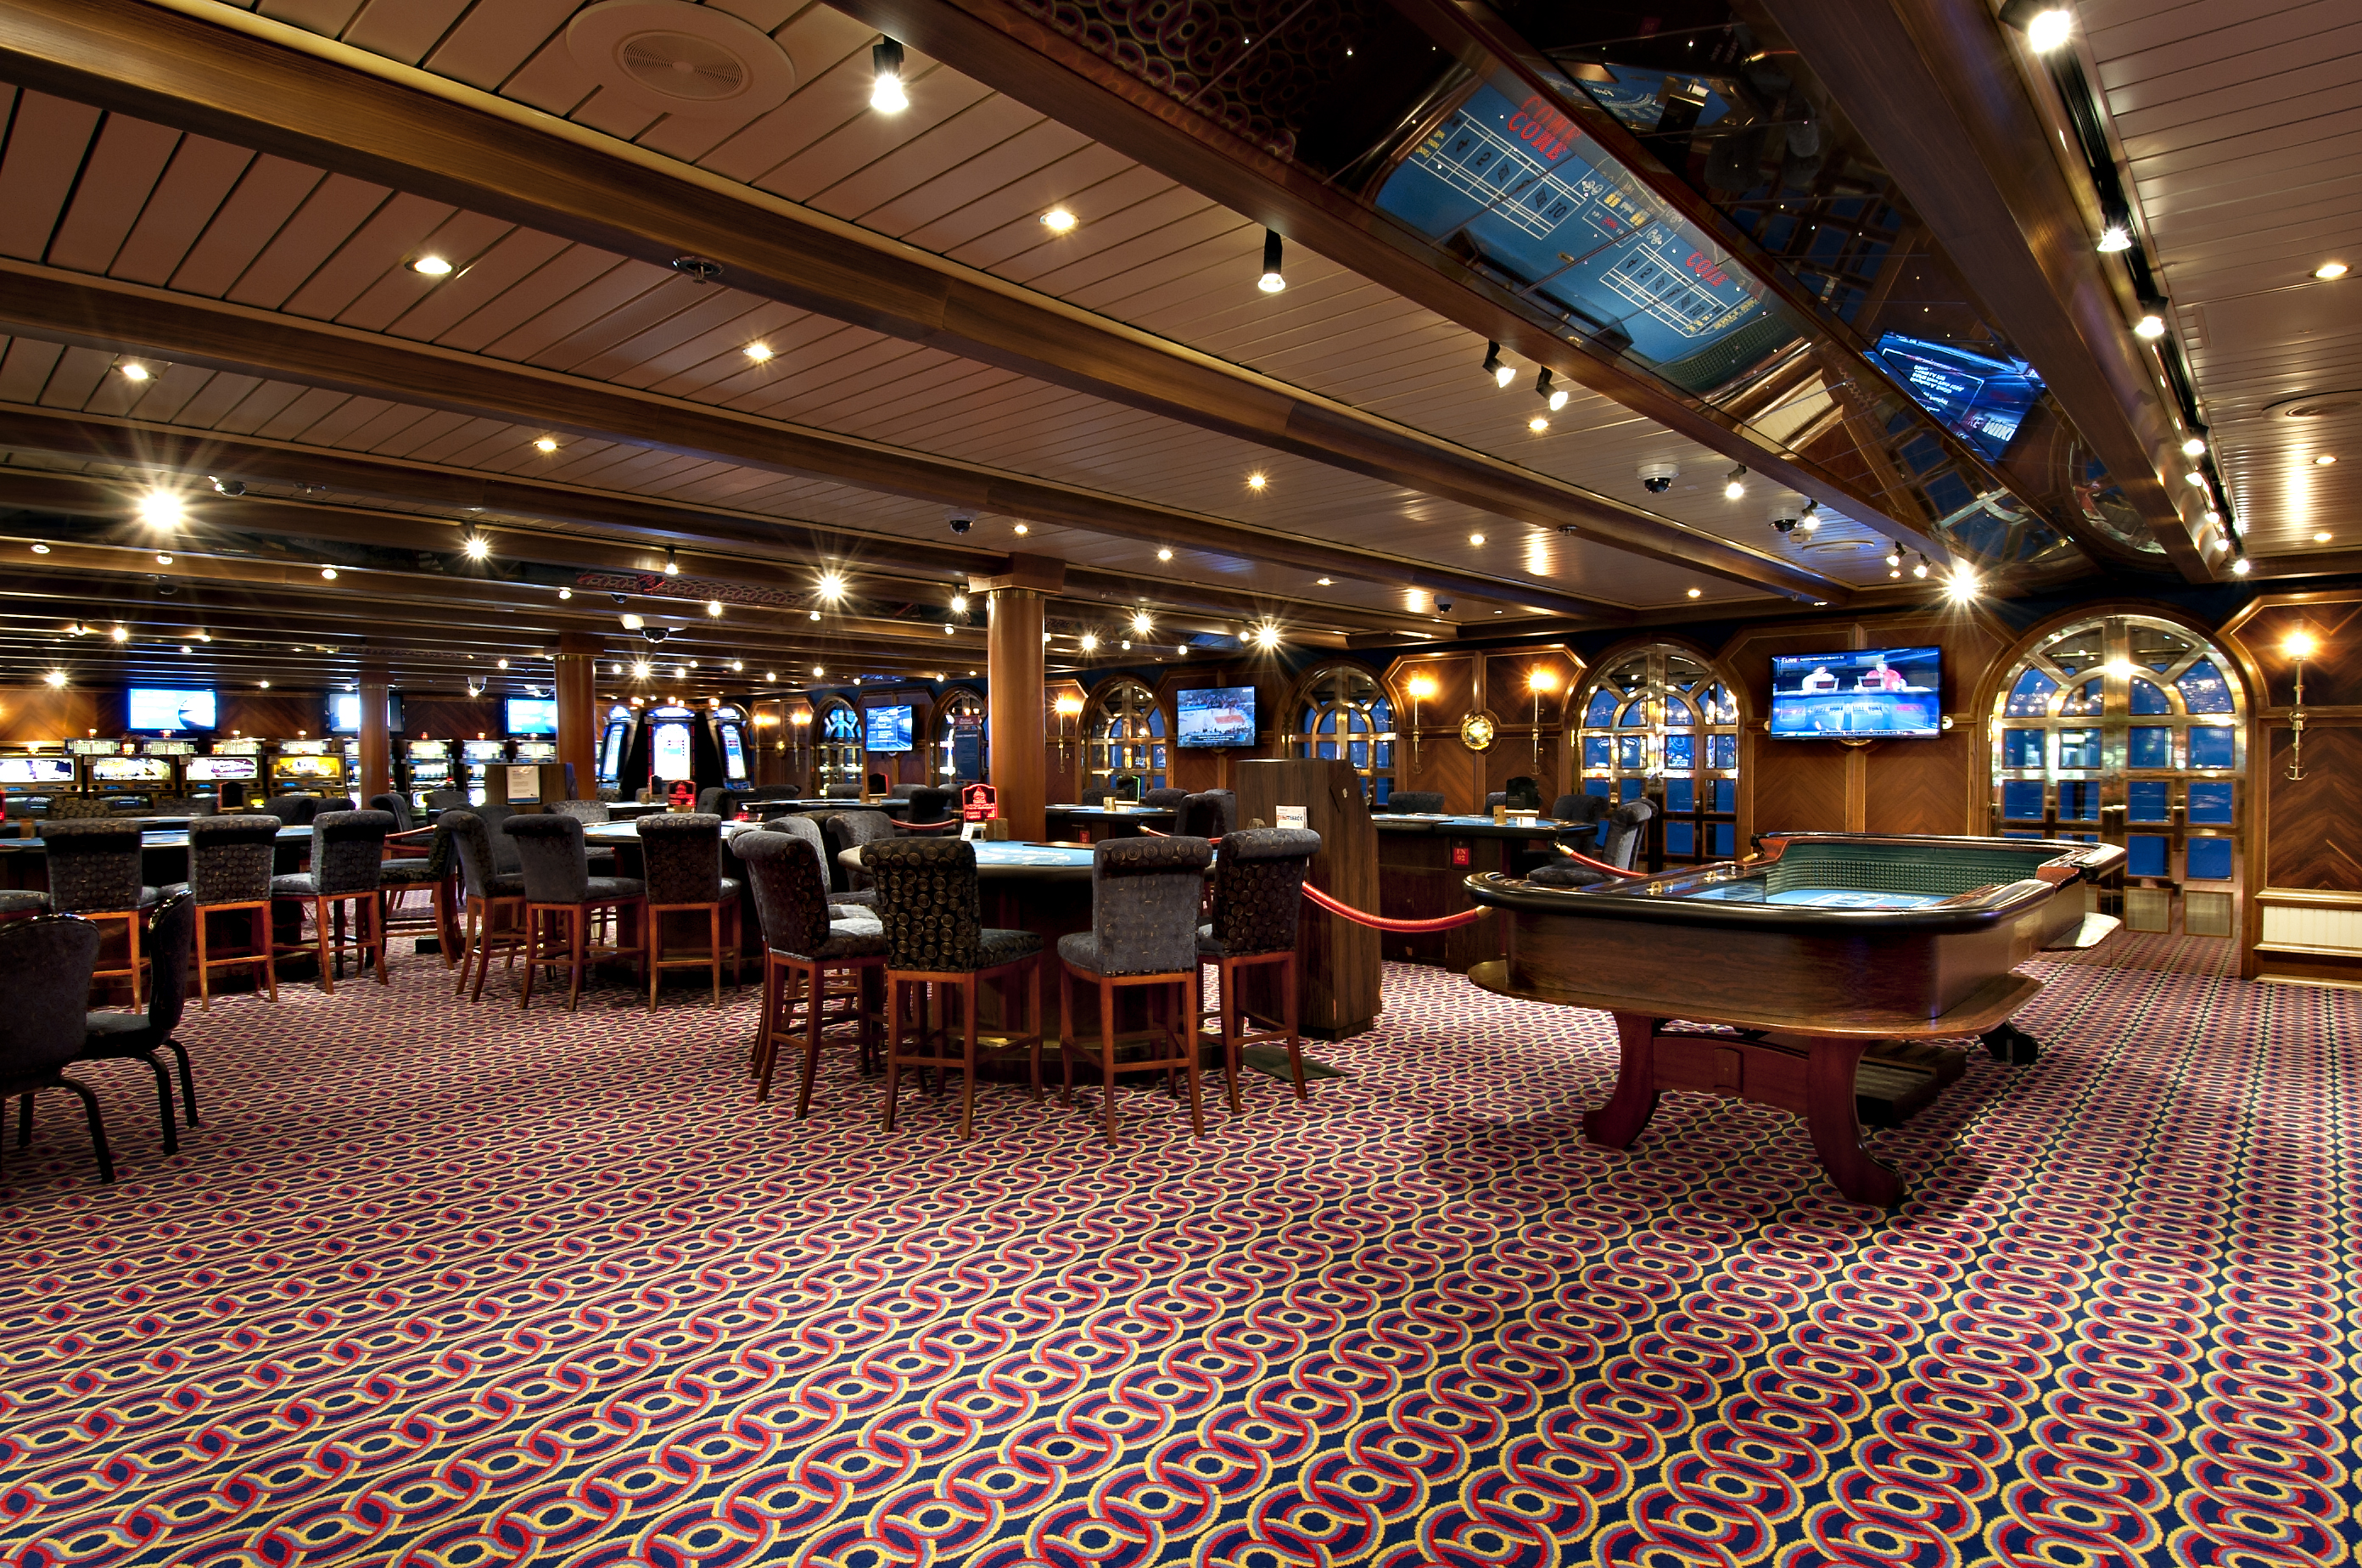 Carnival Miracle Mr Lucky's Casino 1.jpg